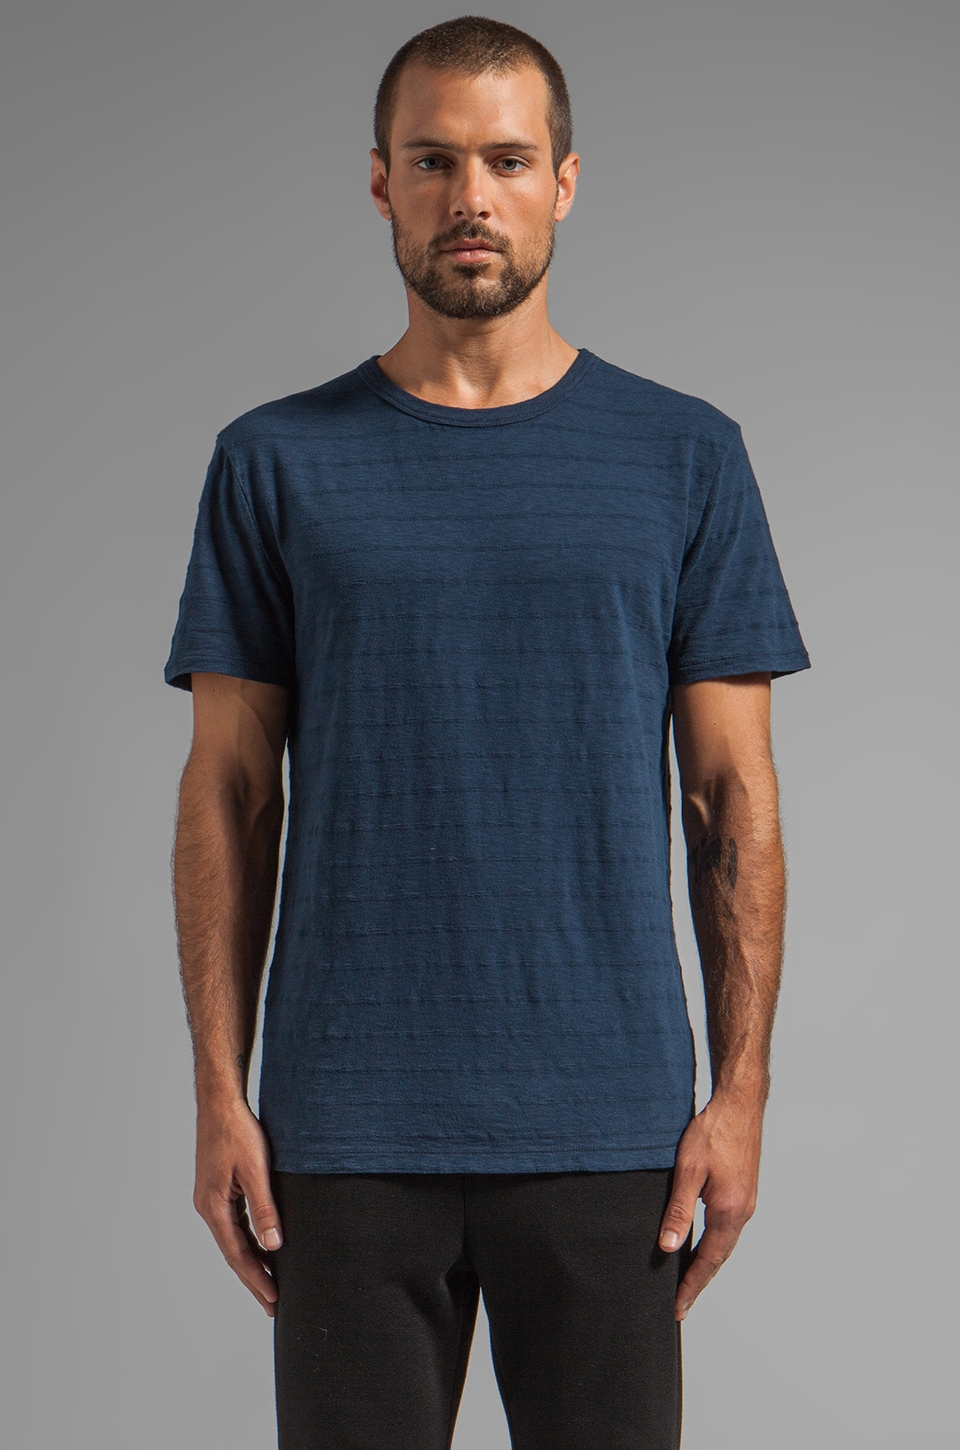 T by Alexander Wang Stripe Slub Crewneck Tee in Indigo